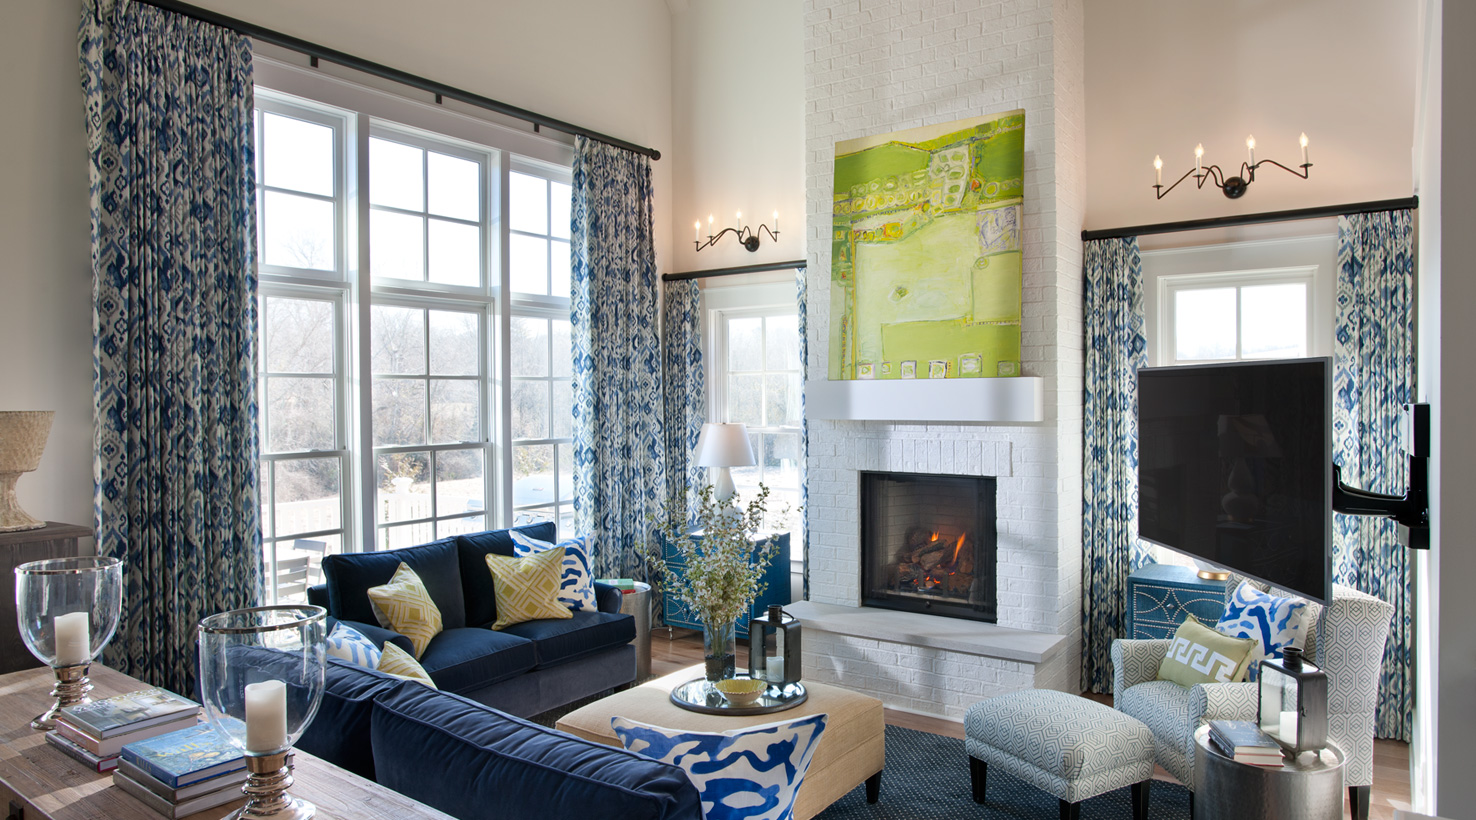 The hgtv smart home 2015 sponsored by sherwin williams for Smart living homes